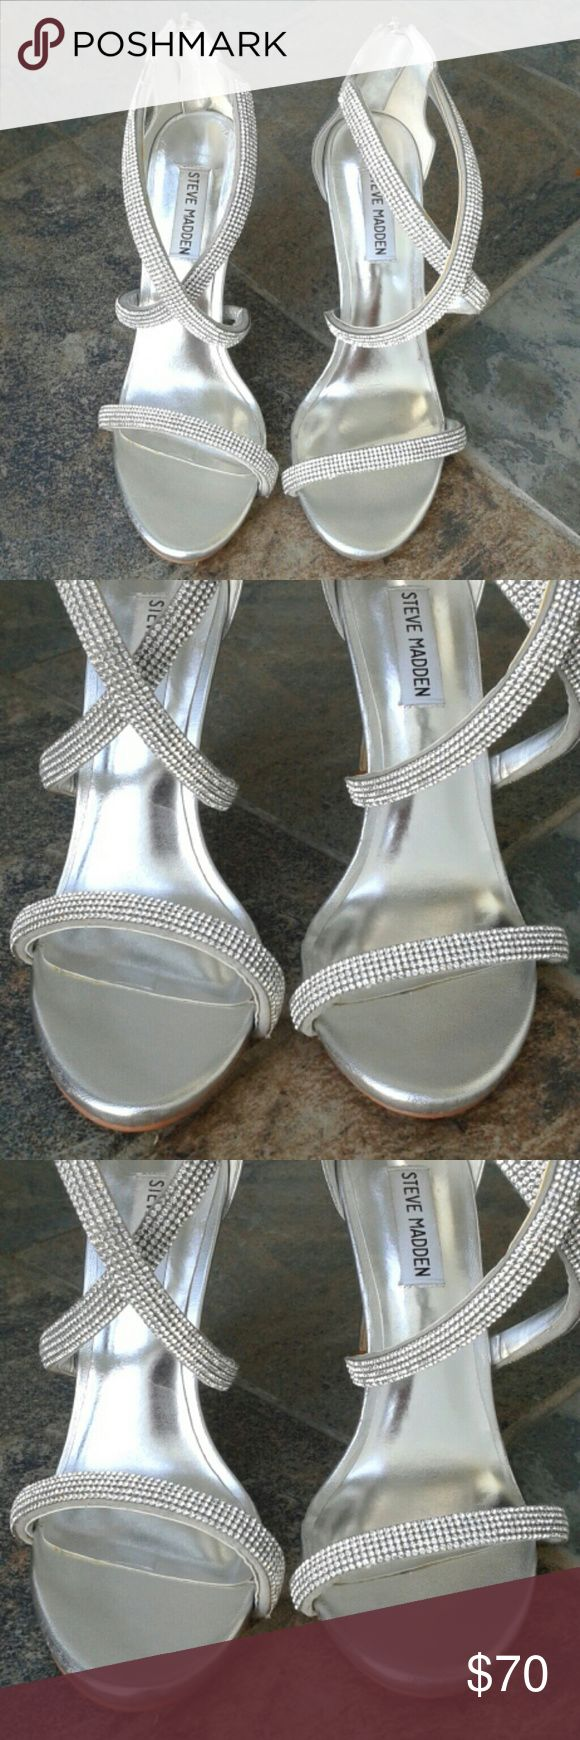 """Steve Madden Silver Strappy Sandals Size 8M Steve Madden Metallic Silver Rhinestone Sandals Style #: Finaa Fabric and PU Upper Man Made Lining Fabric Coated Sole  Open Toe Multi Rhinestone Strap Construction Metallic Finish Back Zip Closure Lightly Padded Insole Covered Stiletto Heel 4.25"""" heel  Perfect go-to sandal for any event! Steve Madden Shoes Sandals"""